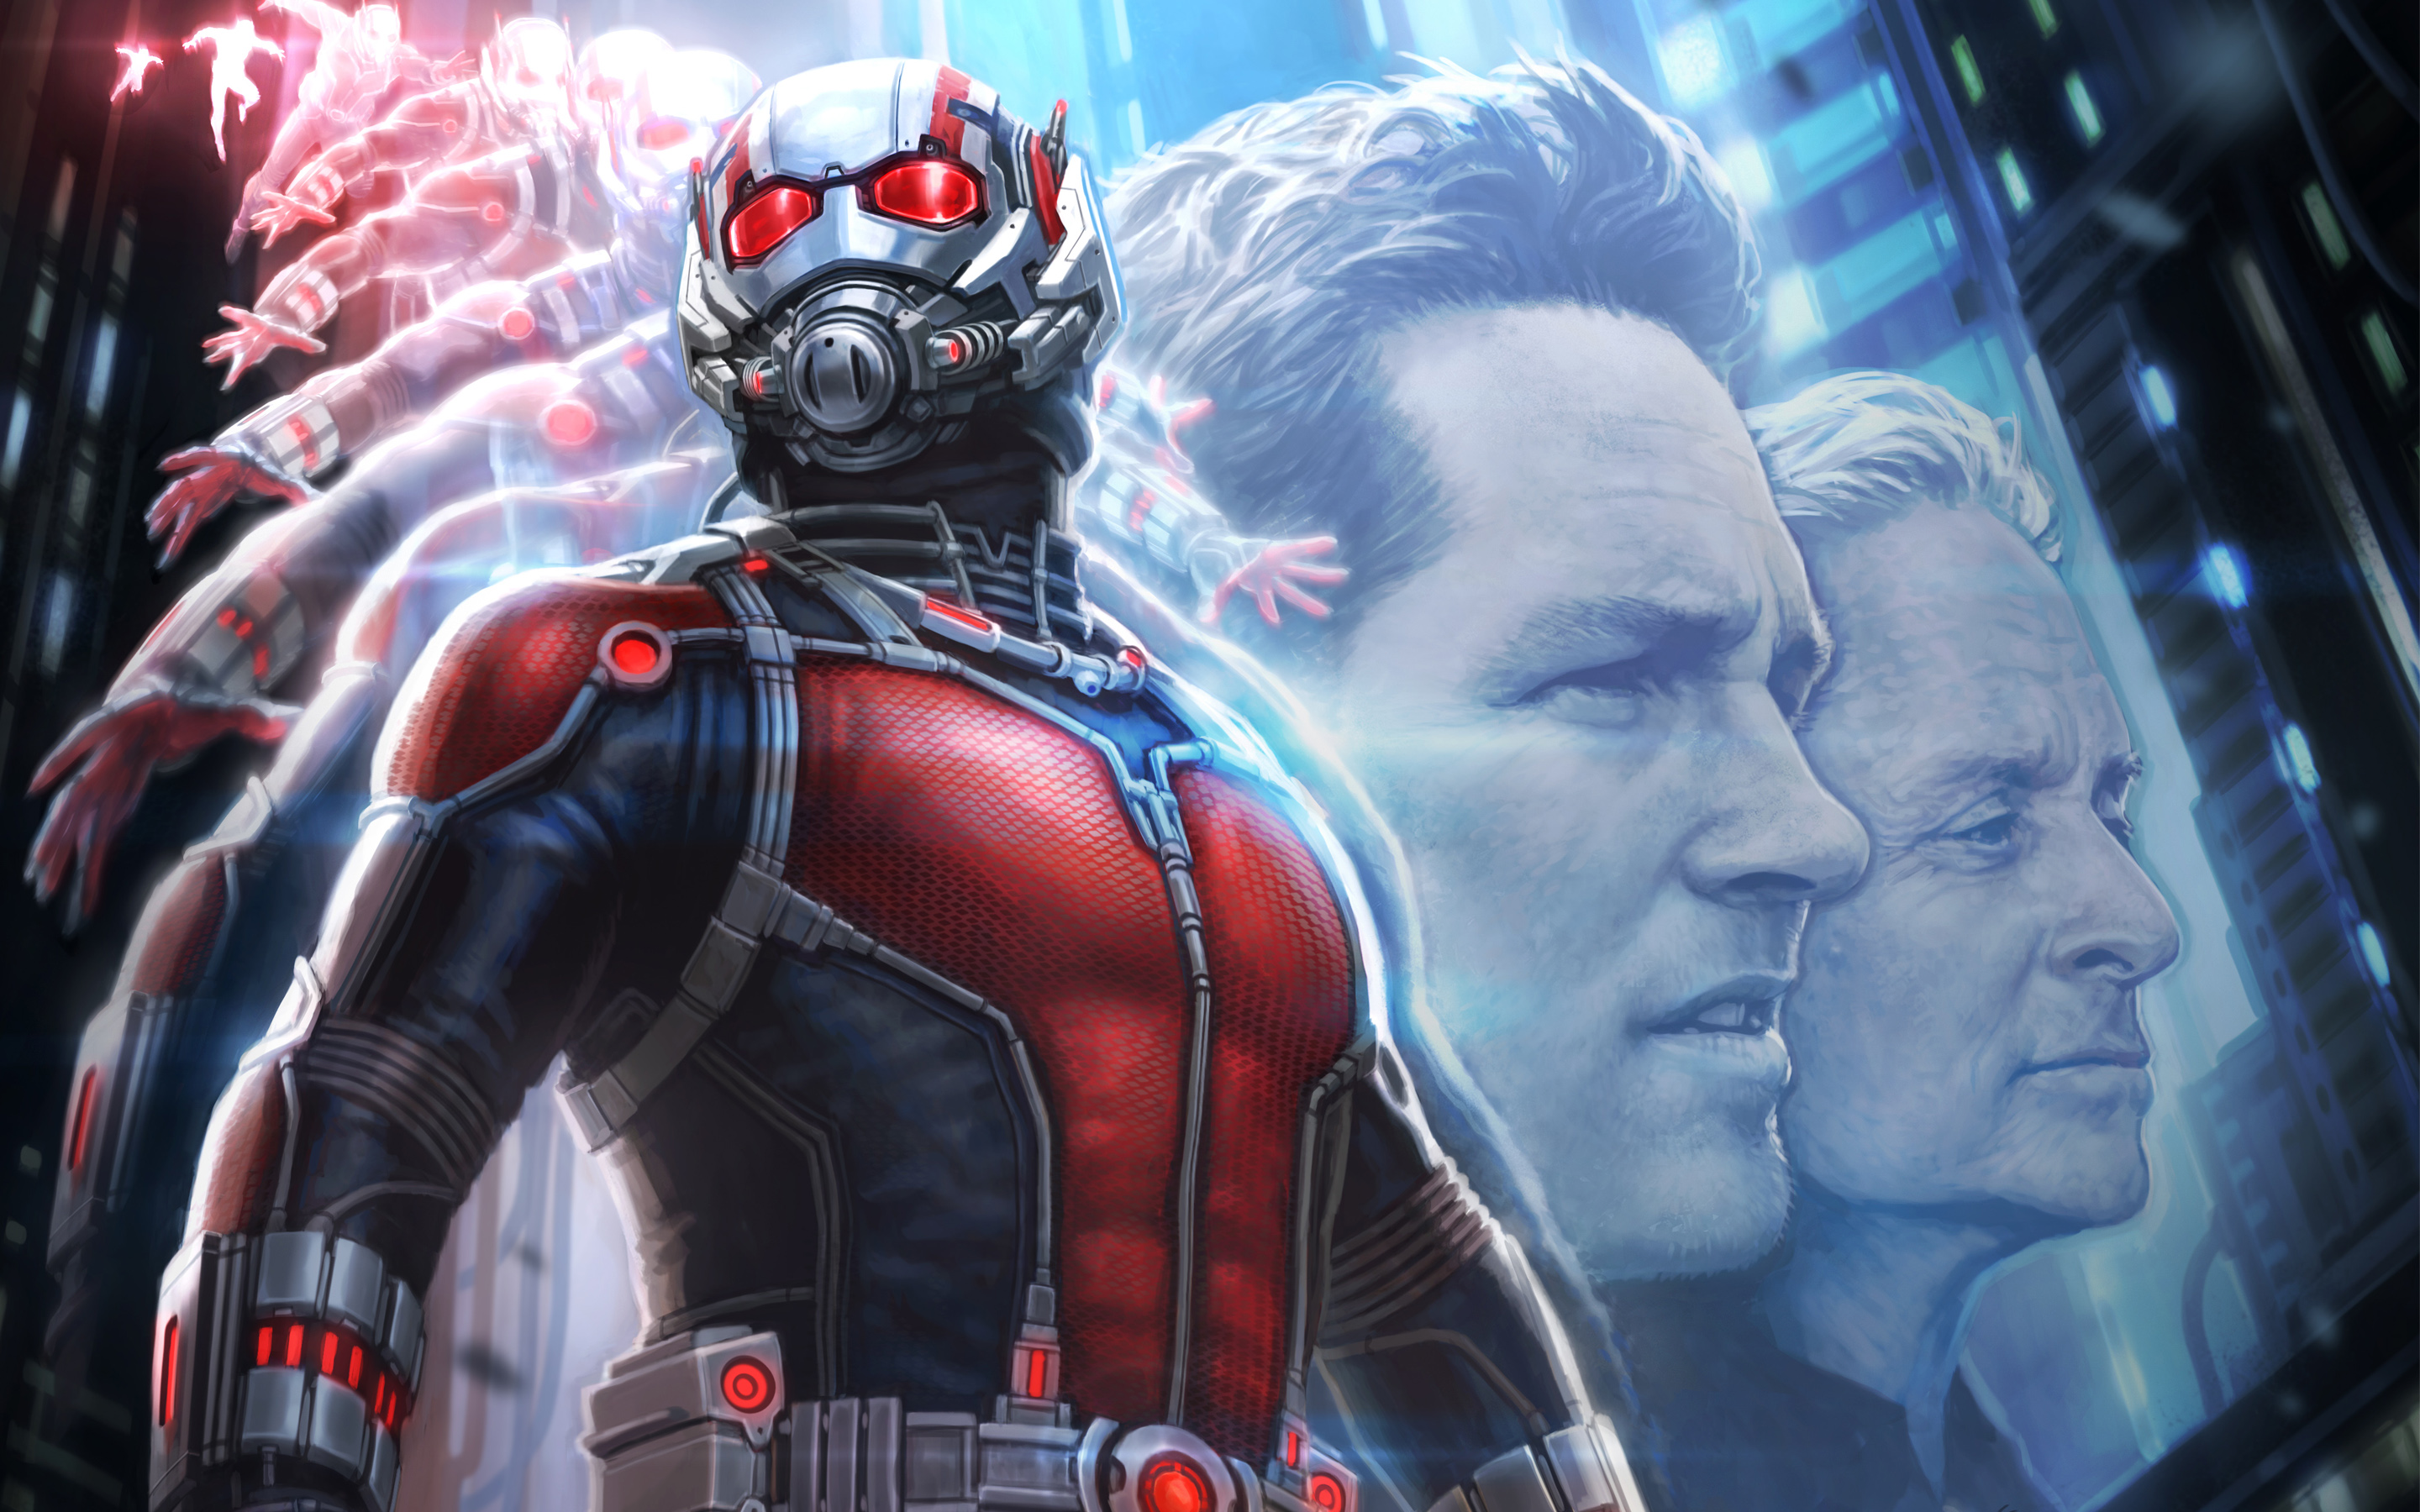 Ant Man Concept Art Wallpapers HD Wallpapers 2880x1800